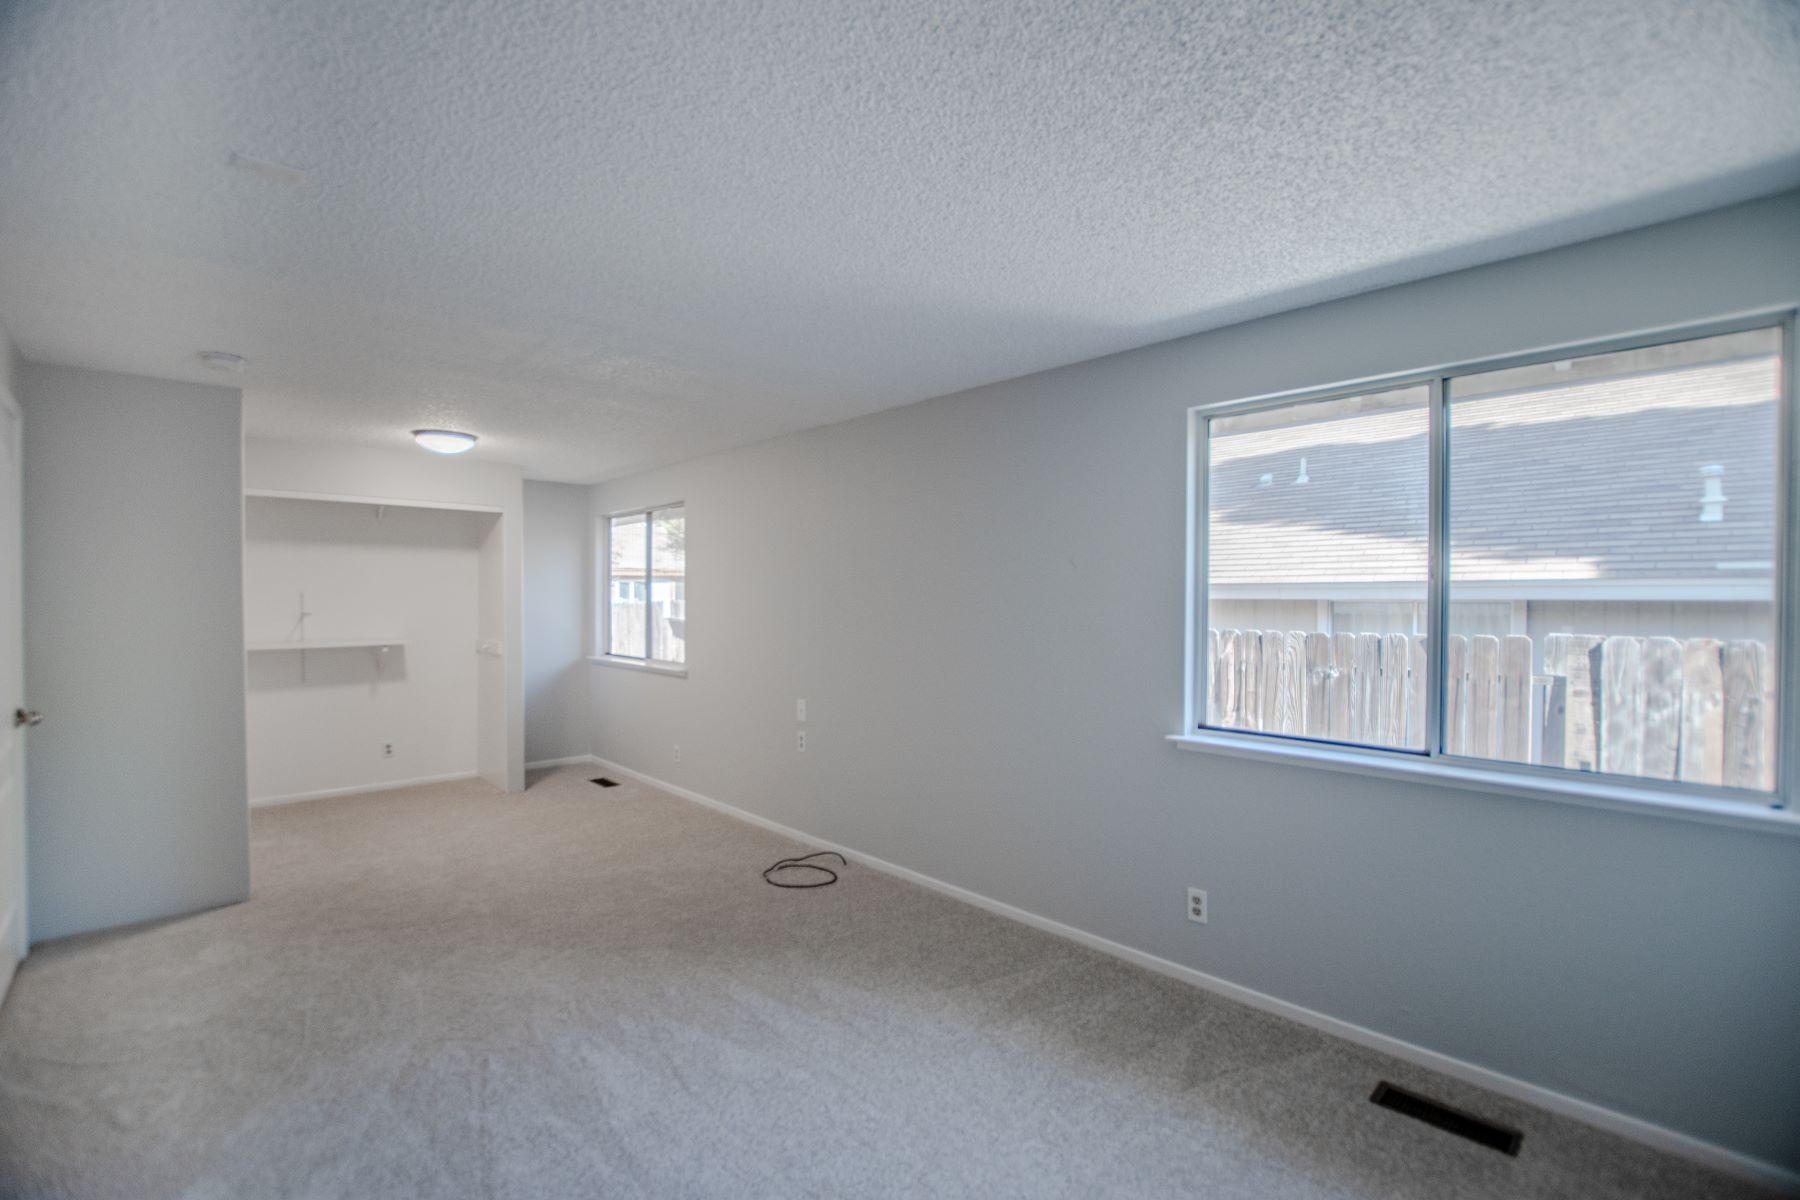 Additional photo for property listing at 1830 Lakeland Hills, Reno, Nevada 1830 Lakeland Hills Reno, Nevada 89523 United States